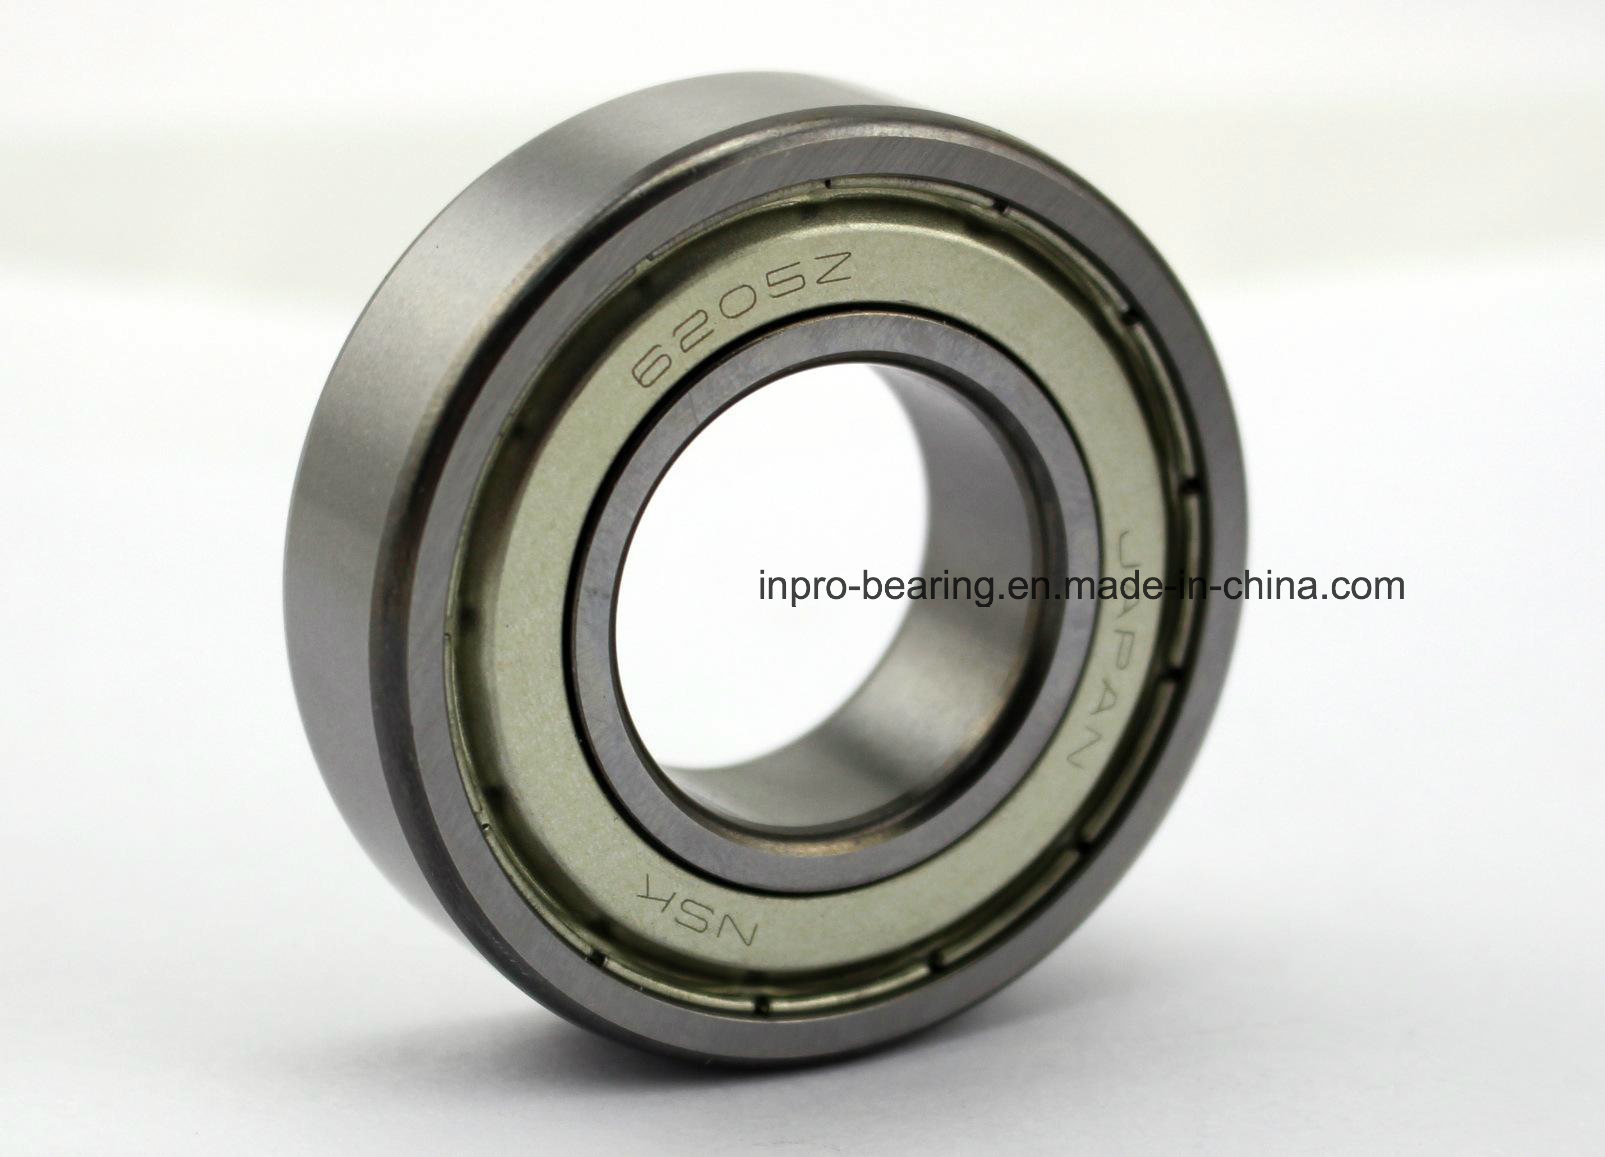 High Performance Industrial Deep Groove Ball Bearing 6200, 6201, 6202, 6203, 6204, 6205 Series with Stainless Steel